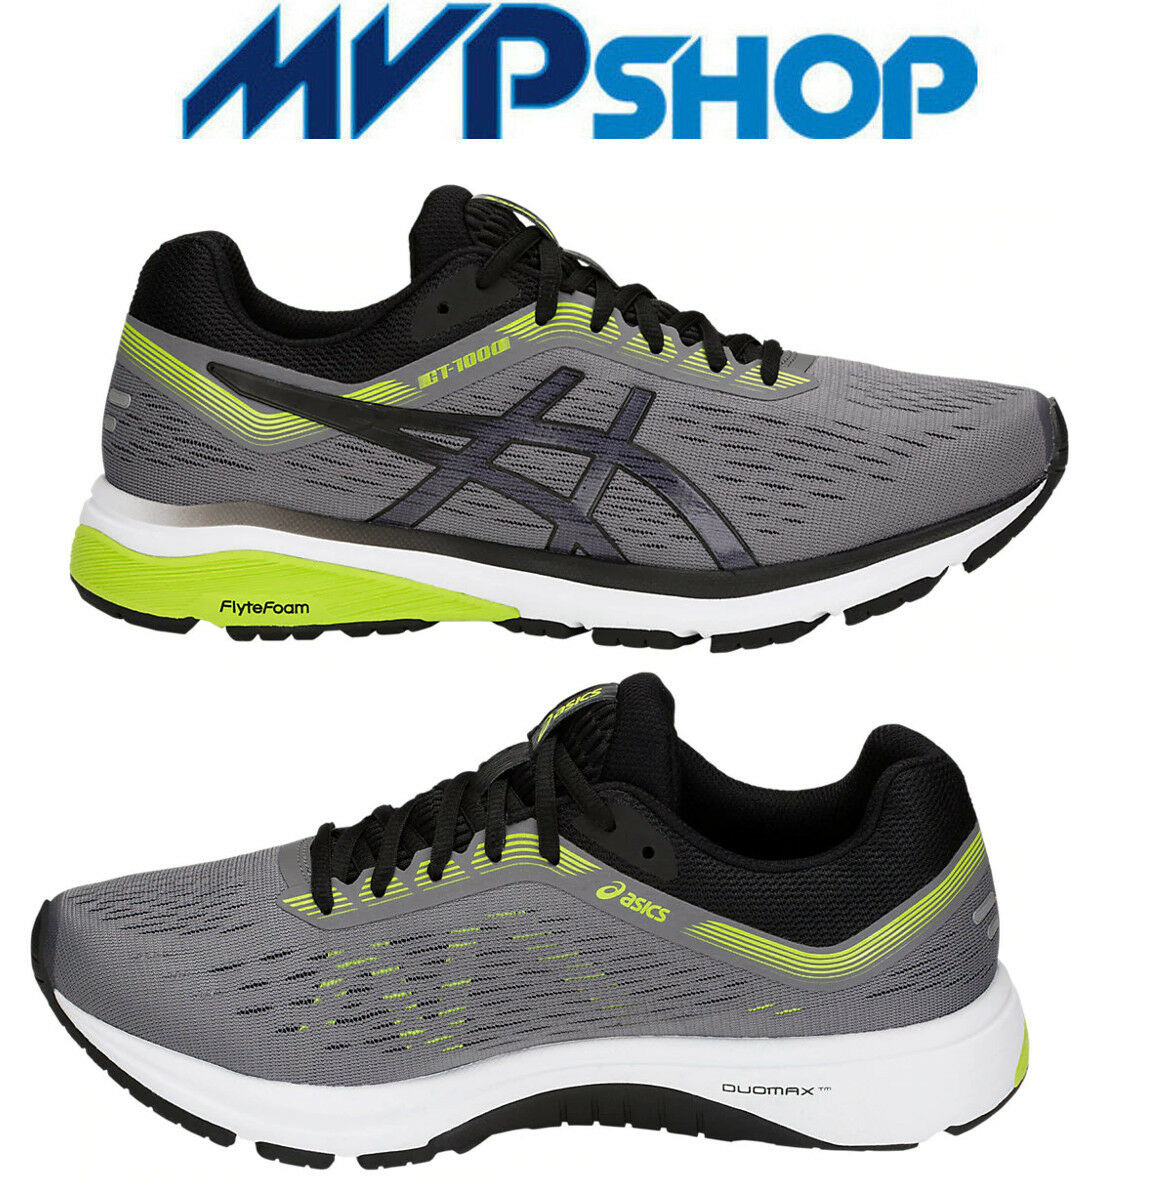 Asics Gel GT 1000 7 shoes running  men 1011A042-021